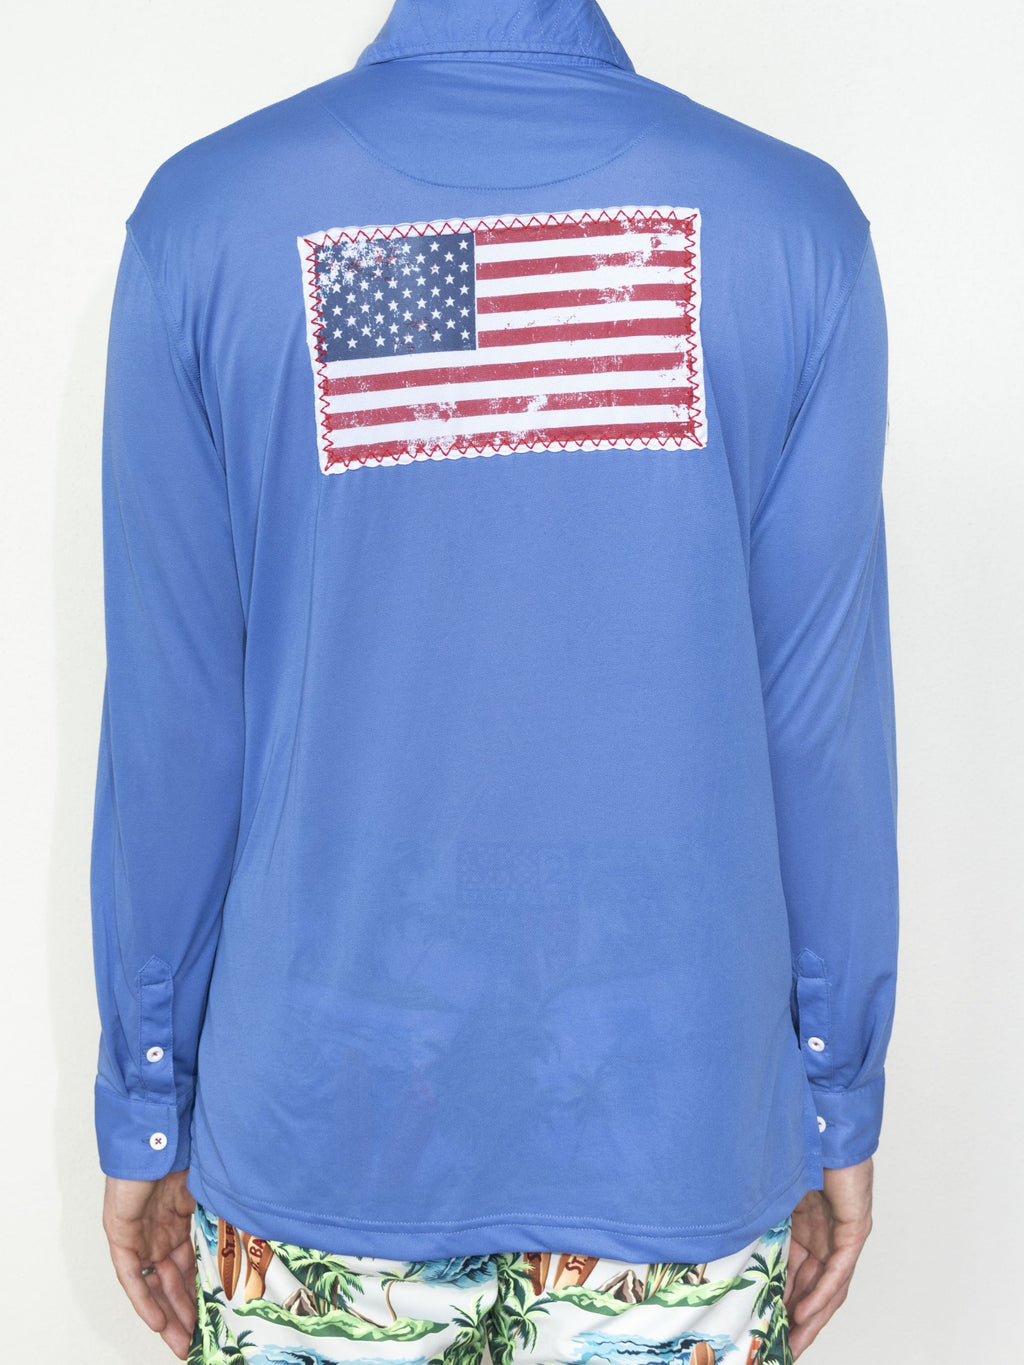 R3 USA Flag Patch UPF50 Shirt - Barbuda Blue